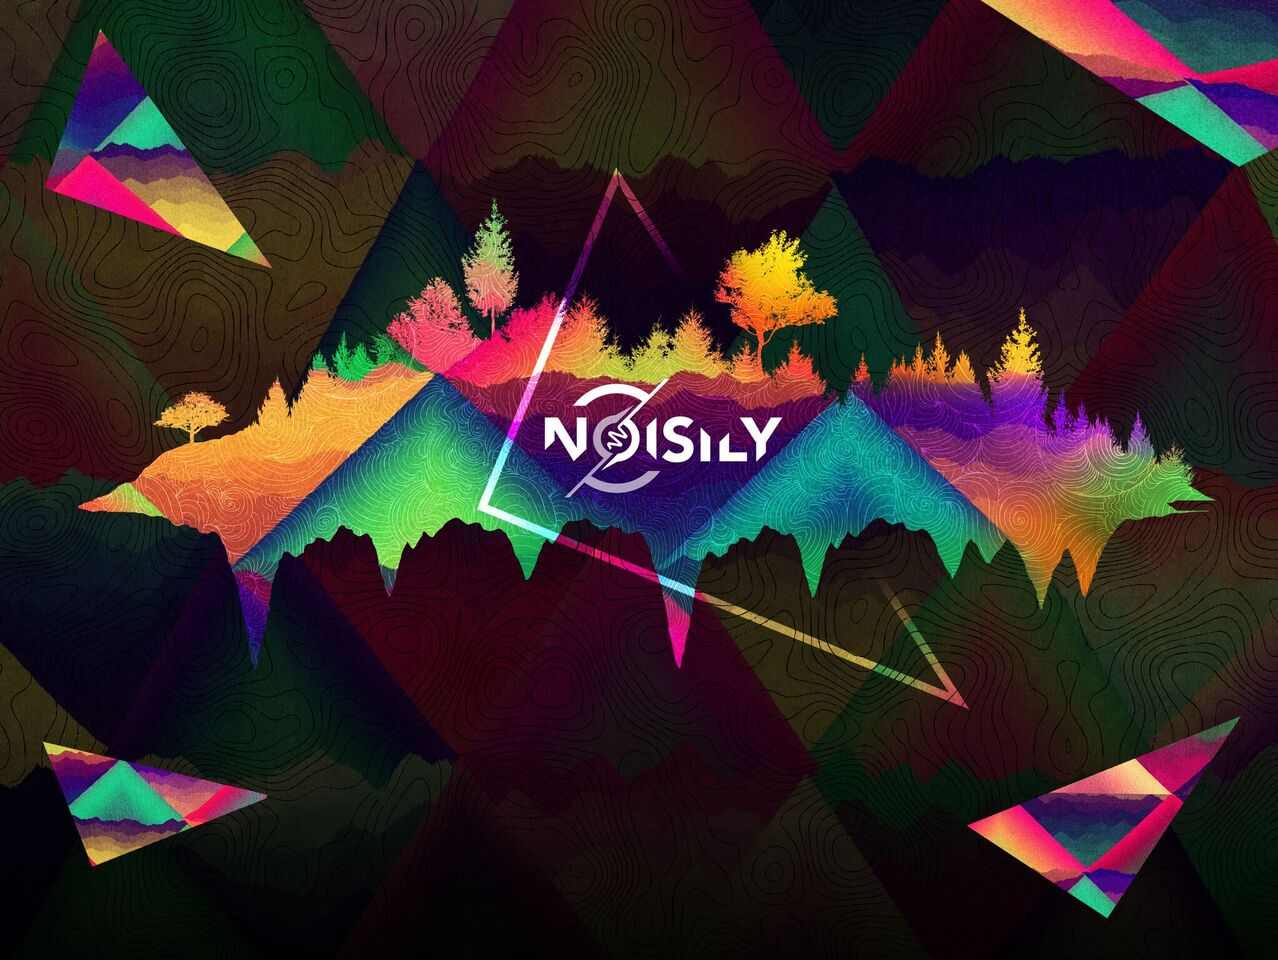 A month after… Noisily!